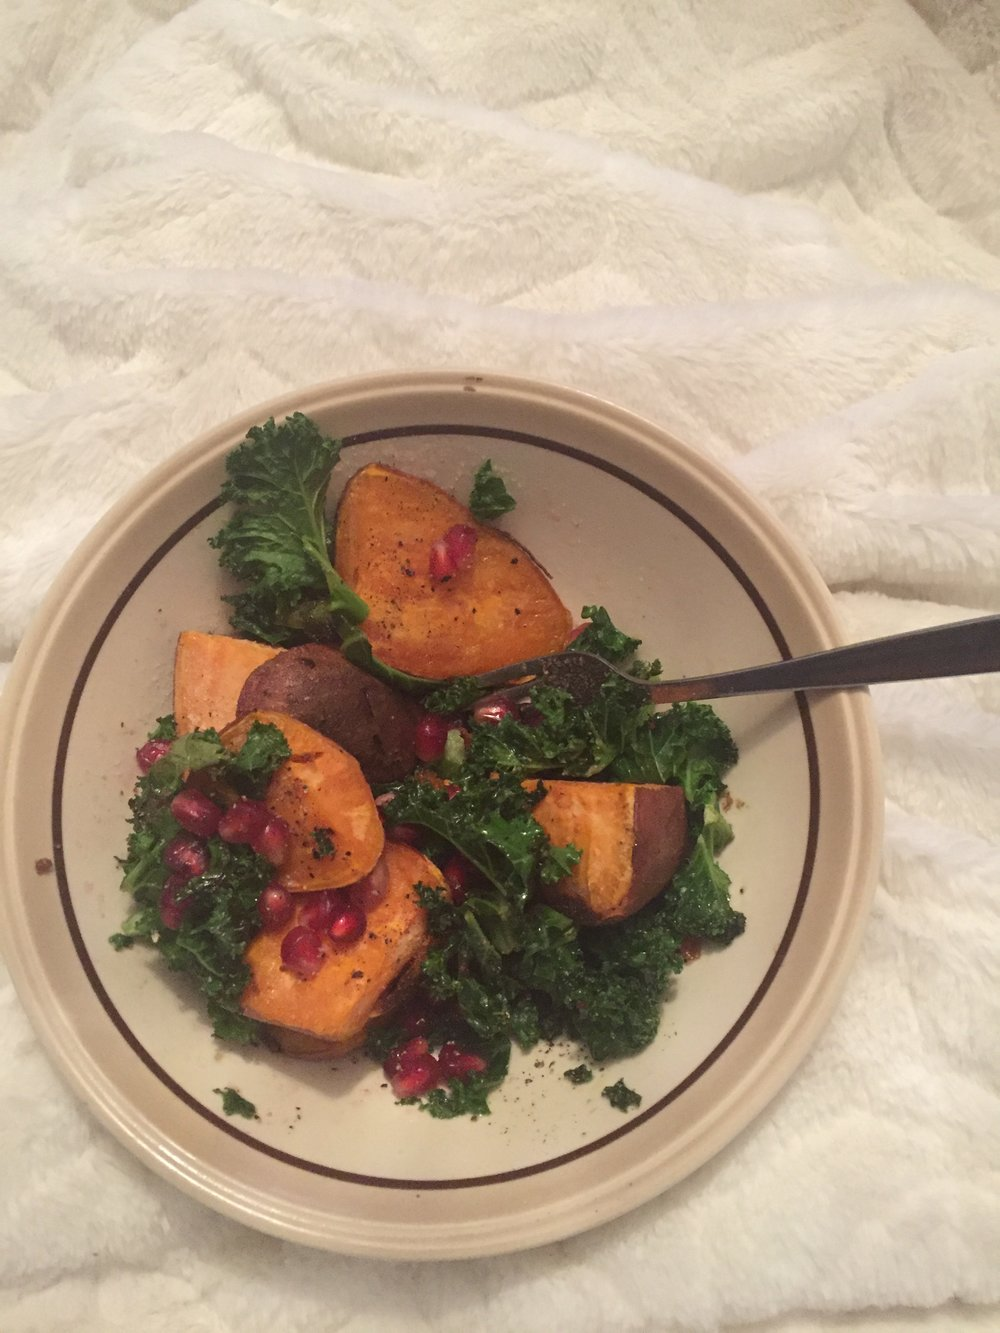 Amy's kale salad with sweet potato and pomegranate